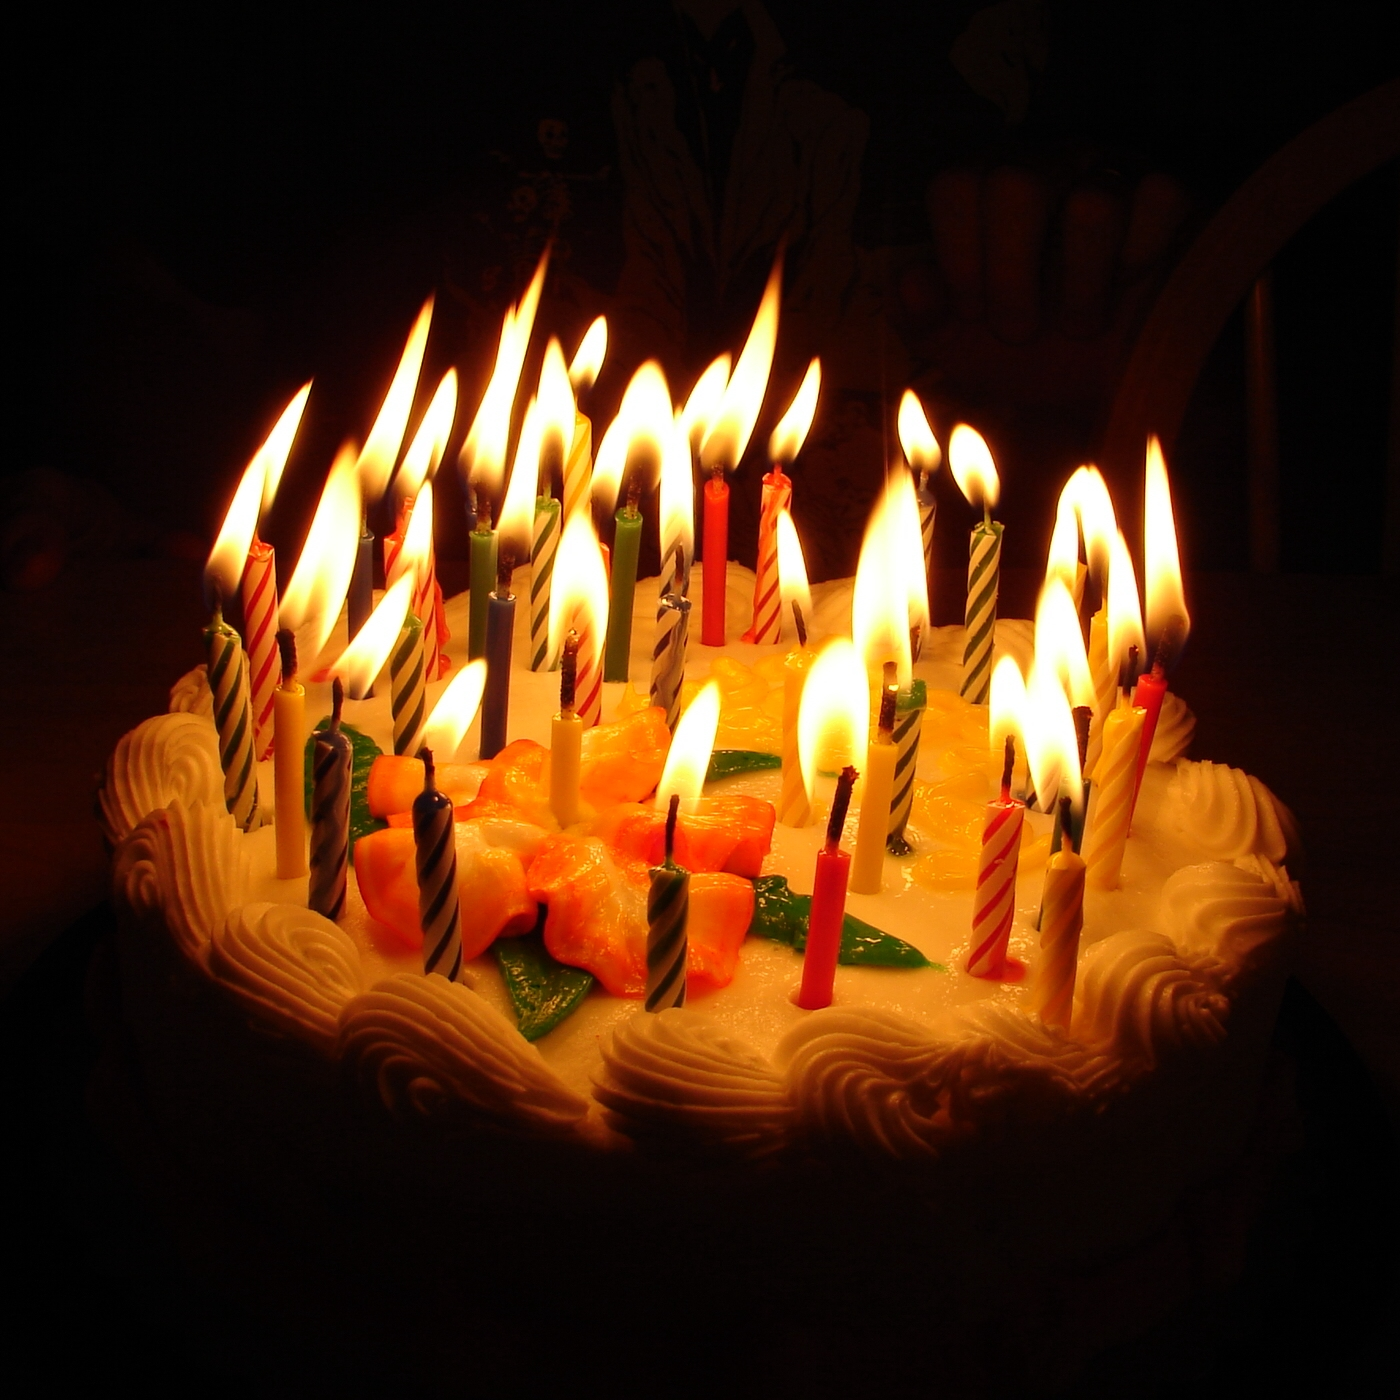 Birthday Cake with Lit Candles by FantasyStock on DeviantArt